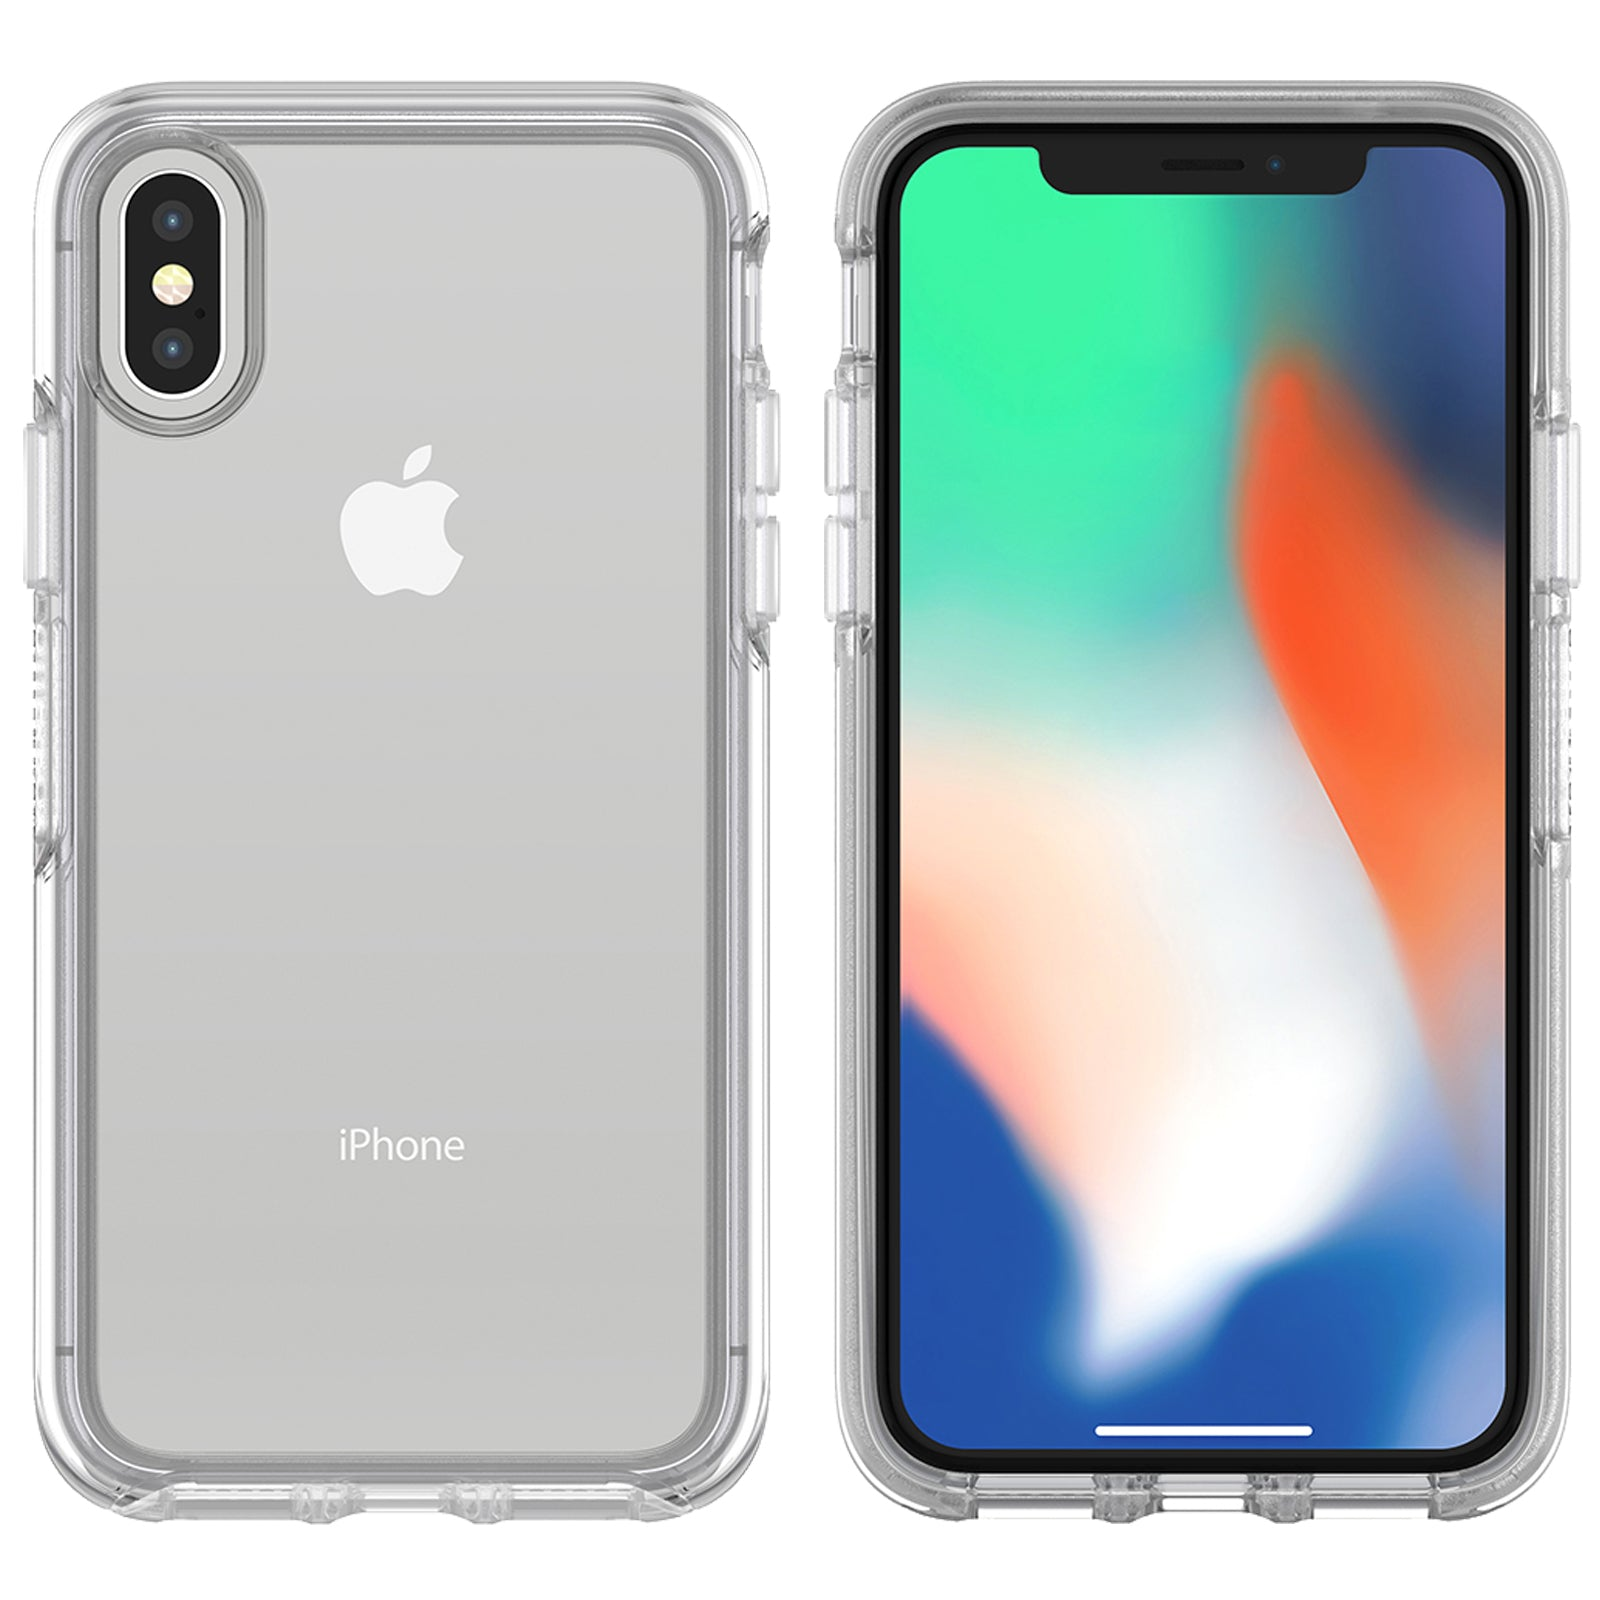 reputable site a62c2 be7bf Lifeproof Fre Case For iPhone X - Night Lite Black